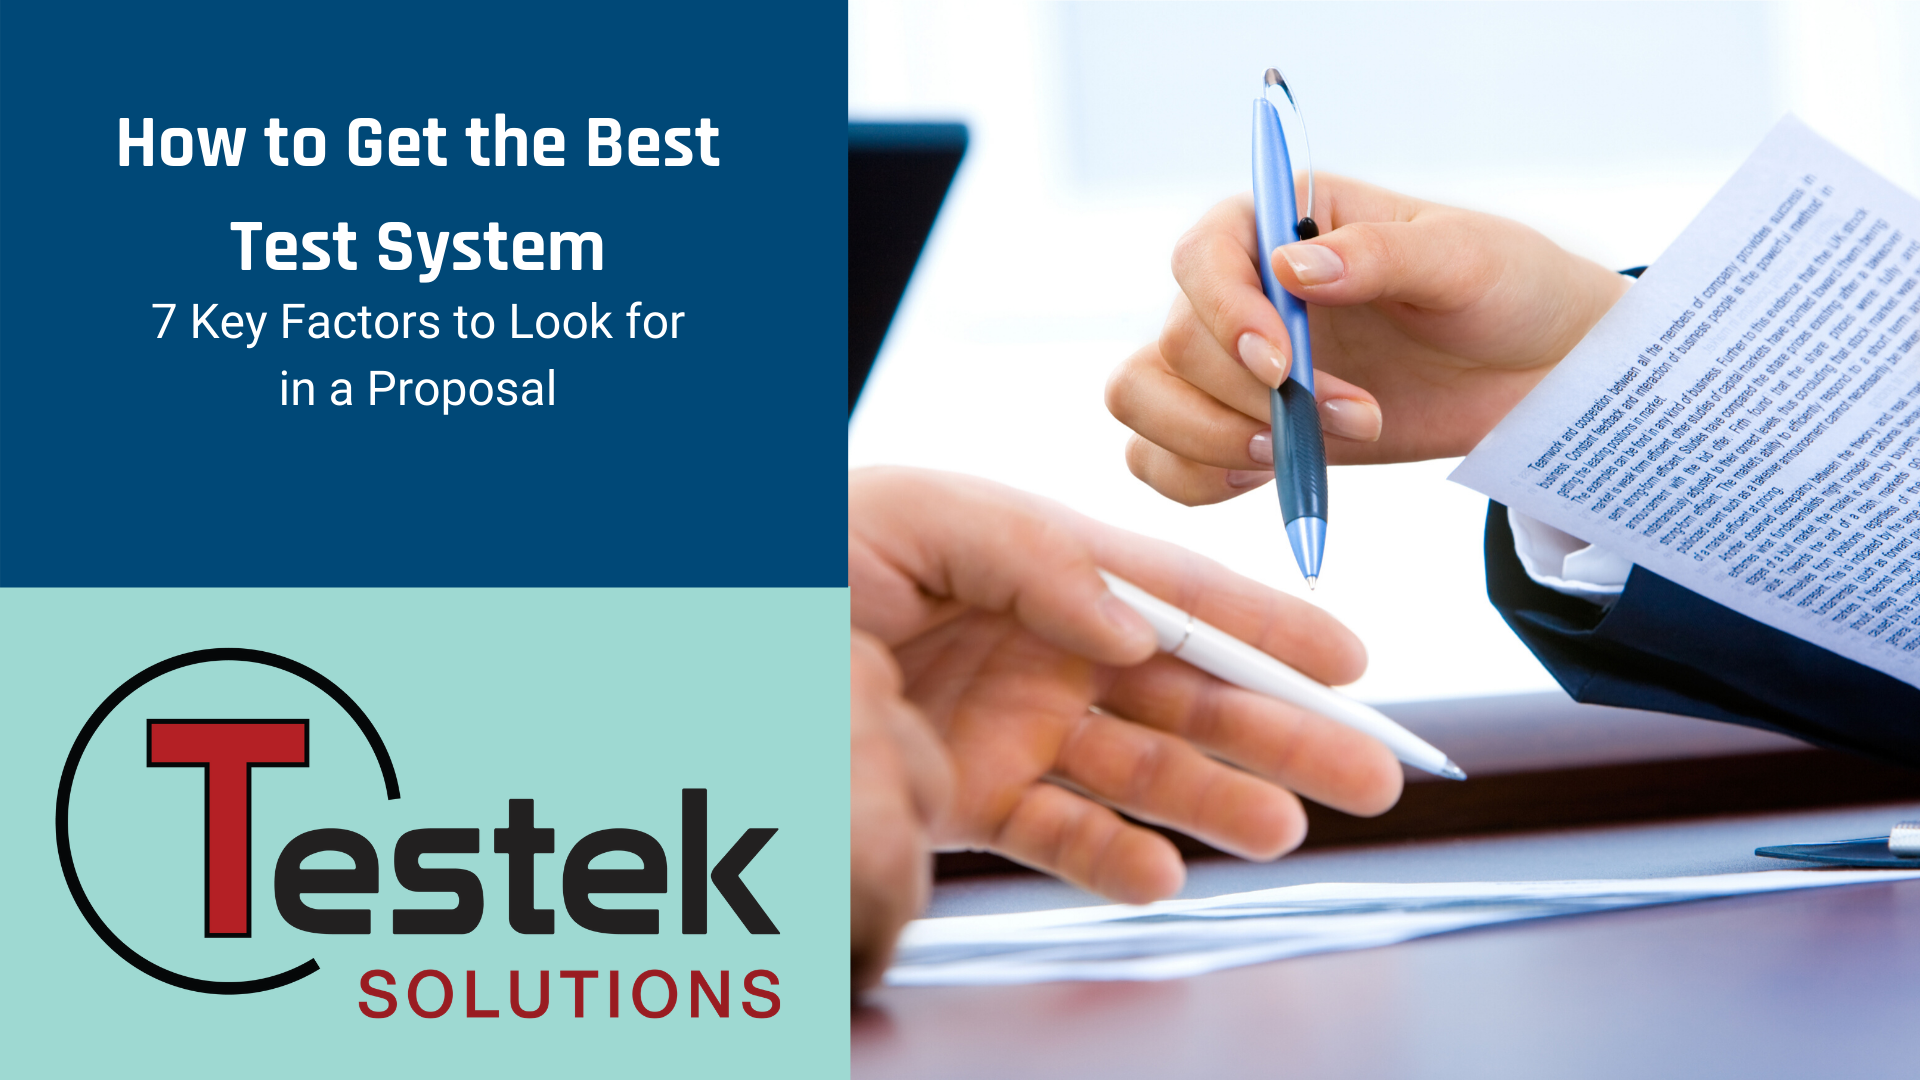 How to Get the Best Test System: 7 Key Factors to Look for in a Proposal